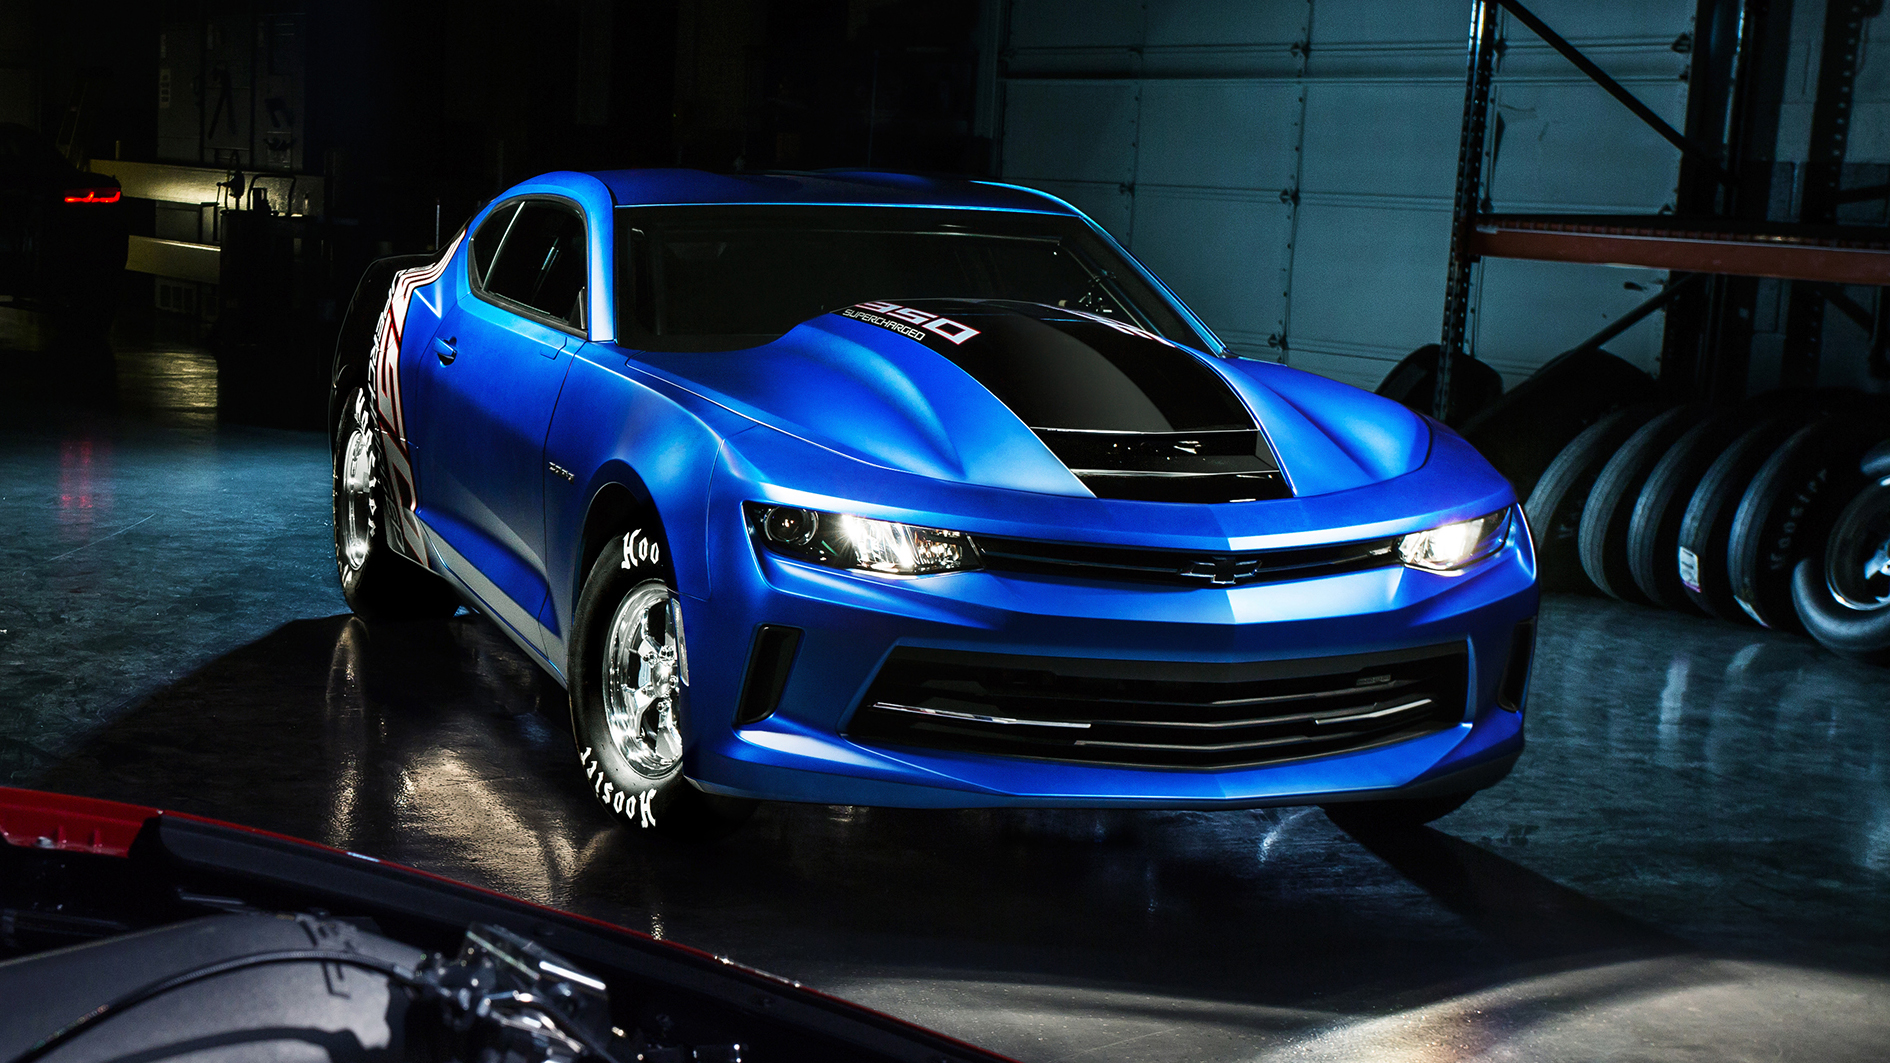 drag racing chevrolet camaros want easy these camaro sema strip modified gear ready muscle track